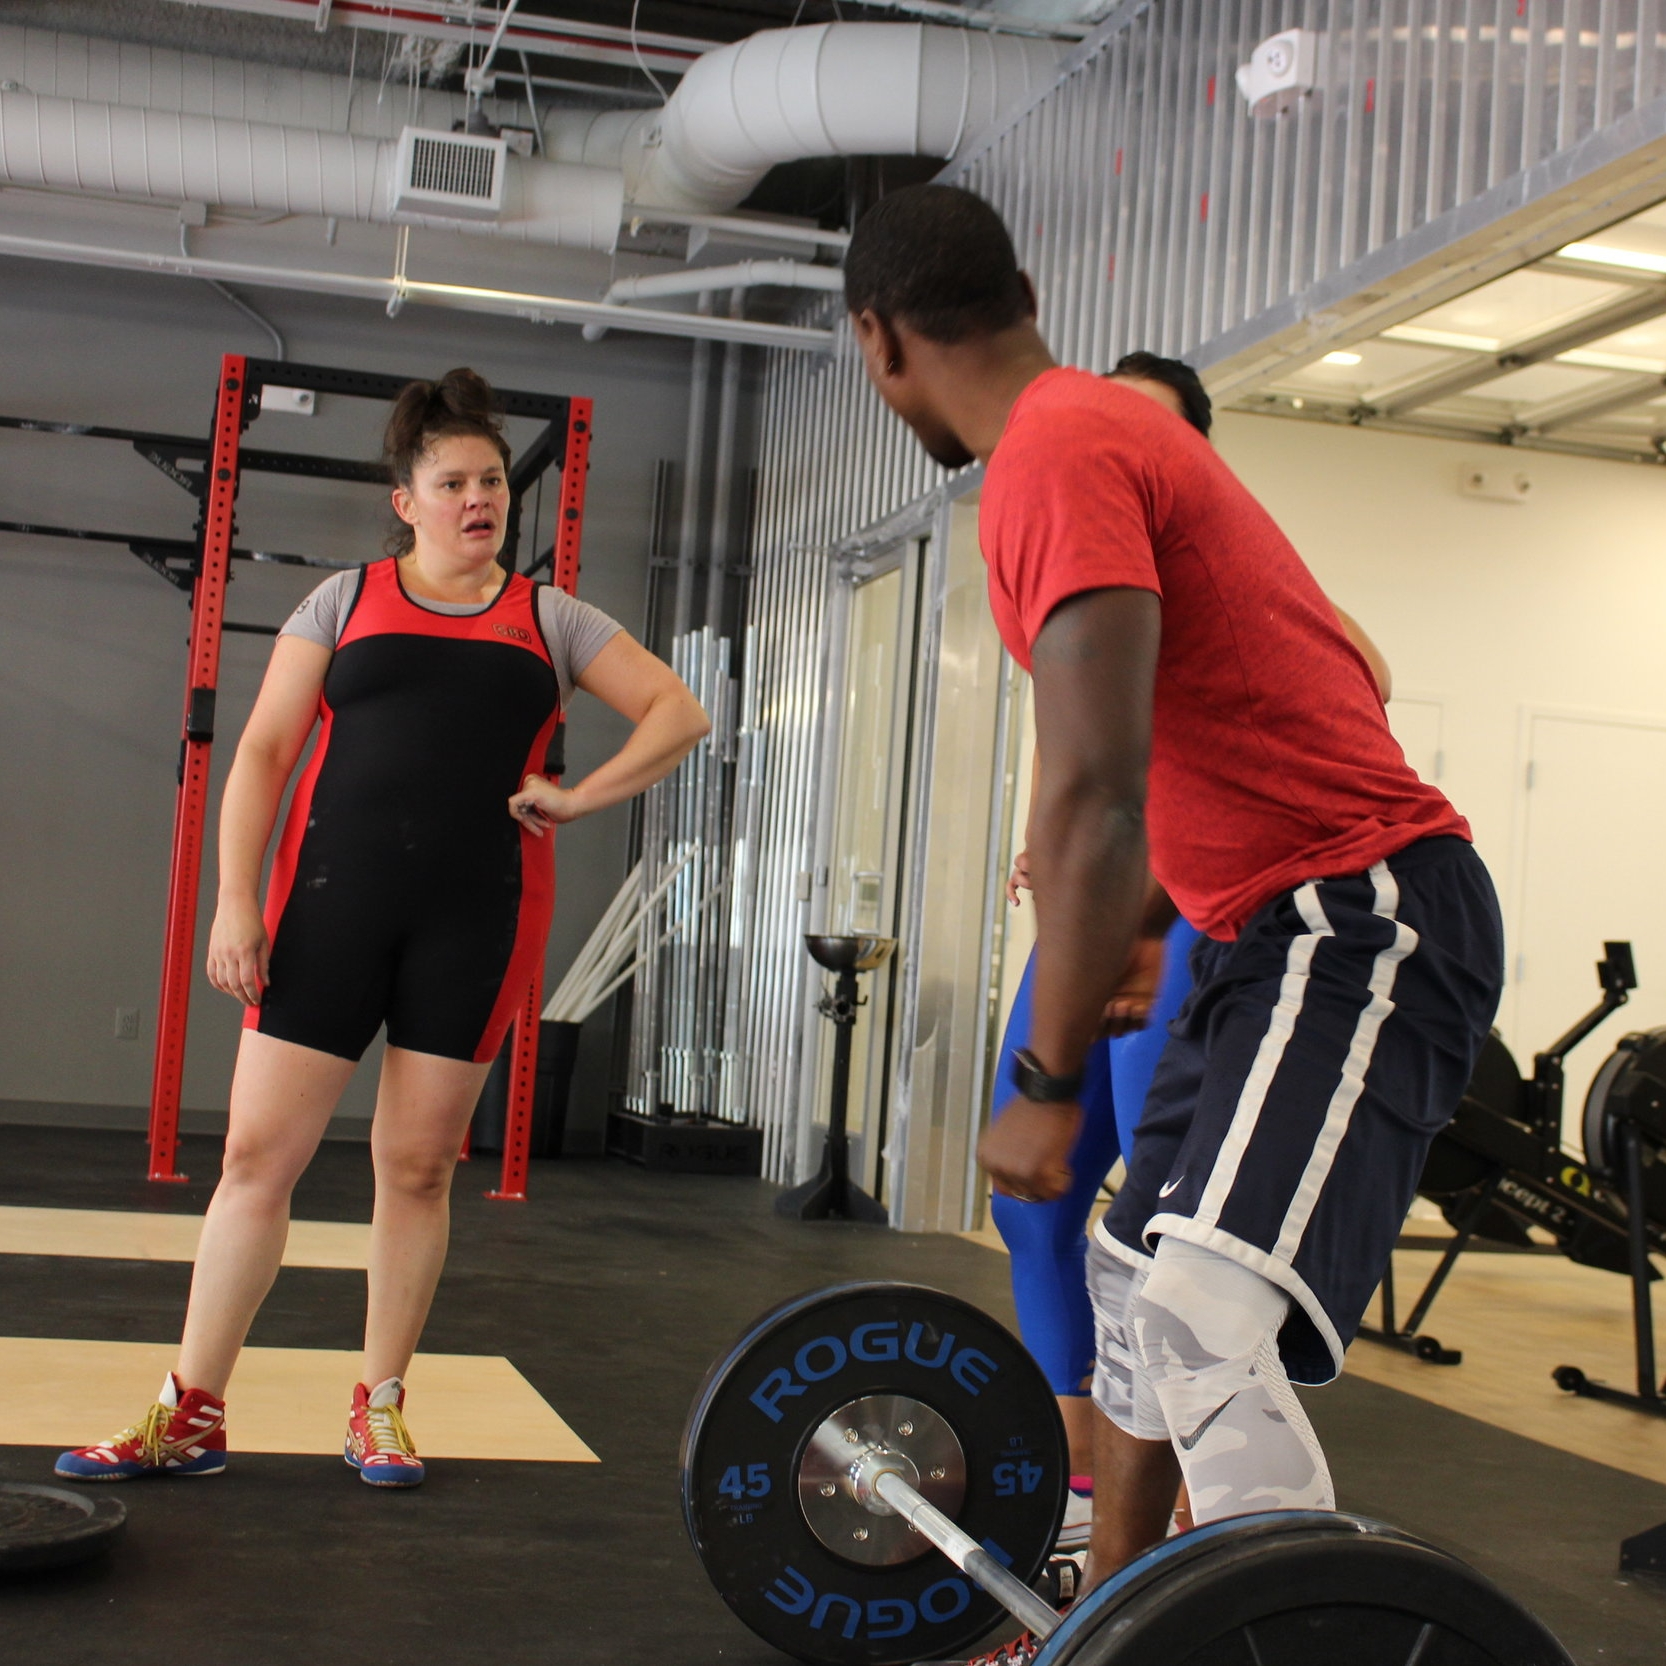 Personal Training - Achieve personal results with personal attention. After an initial meeting we'll prepare a plan to help you reach your goals.